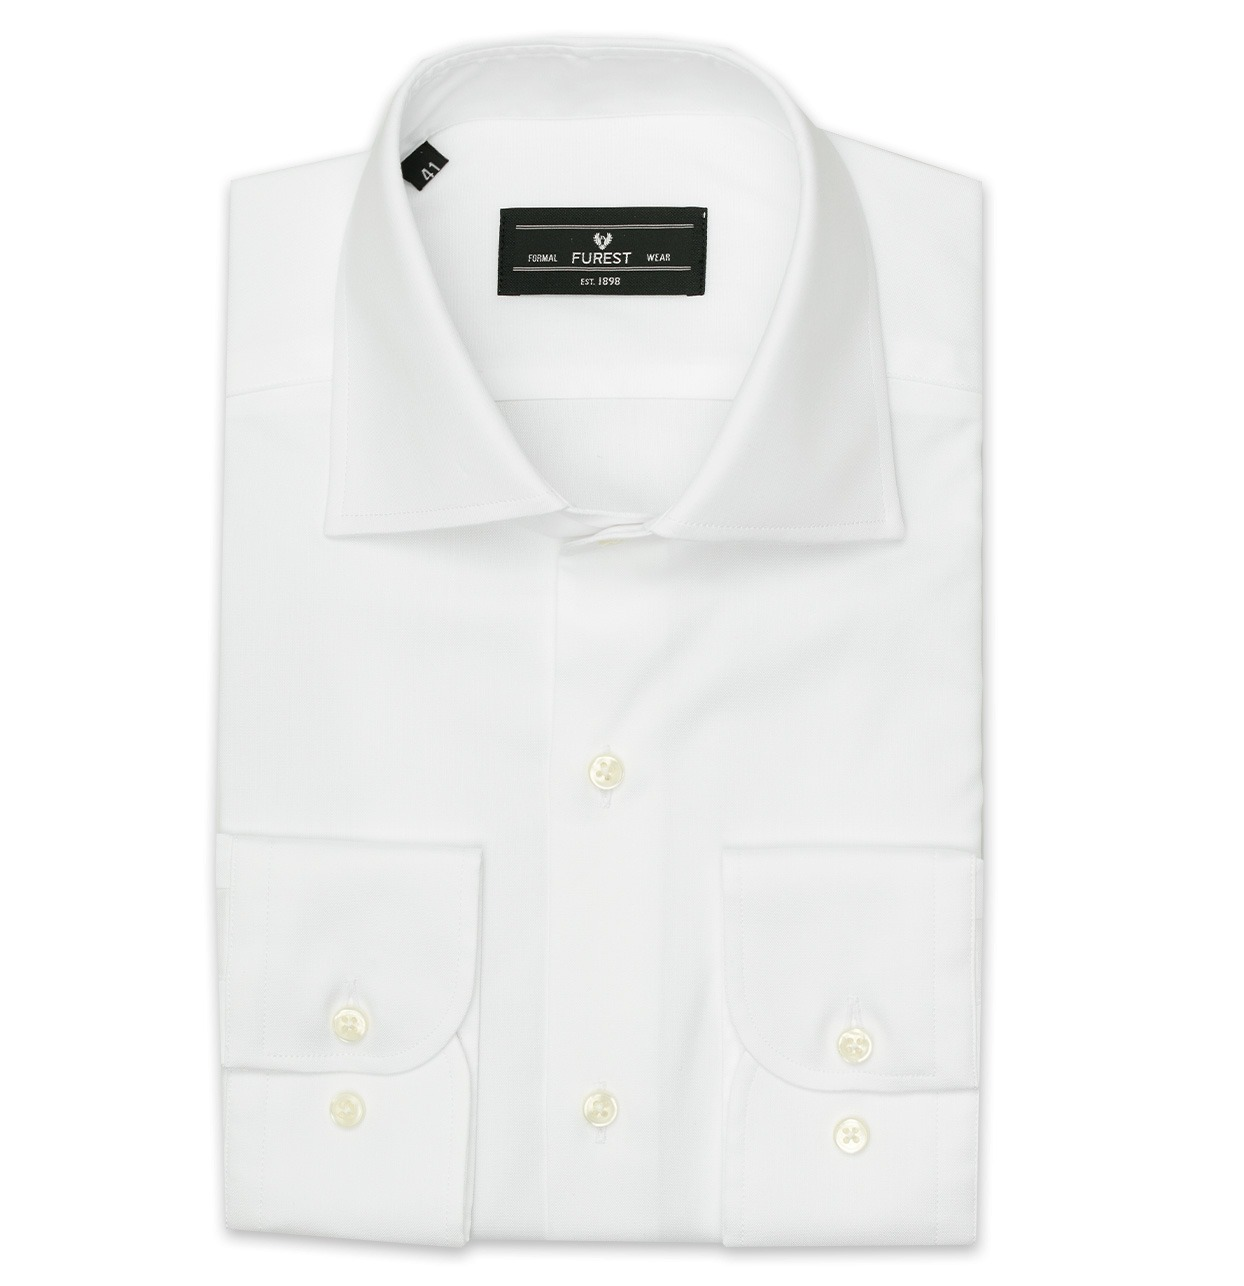 Camisa Formal Wear REGULAR FIT cuello Italiano modelo NAPOLI tejido pin point color blanco, 100% Algodón.